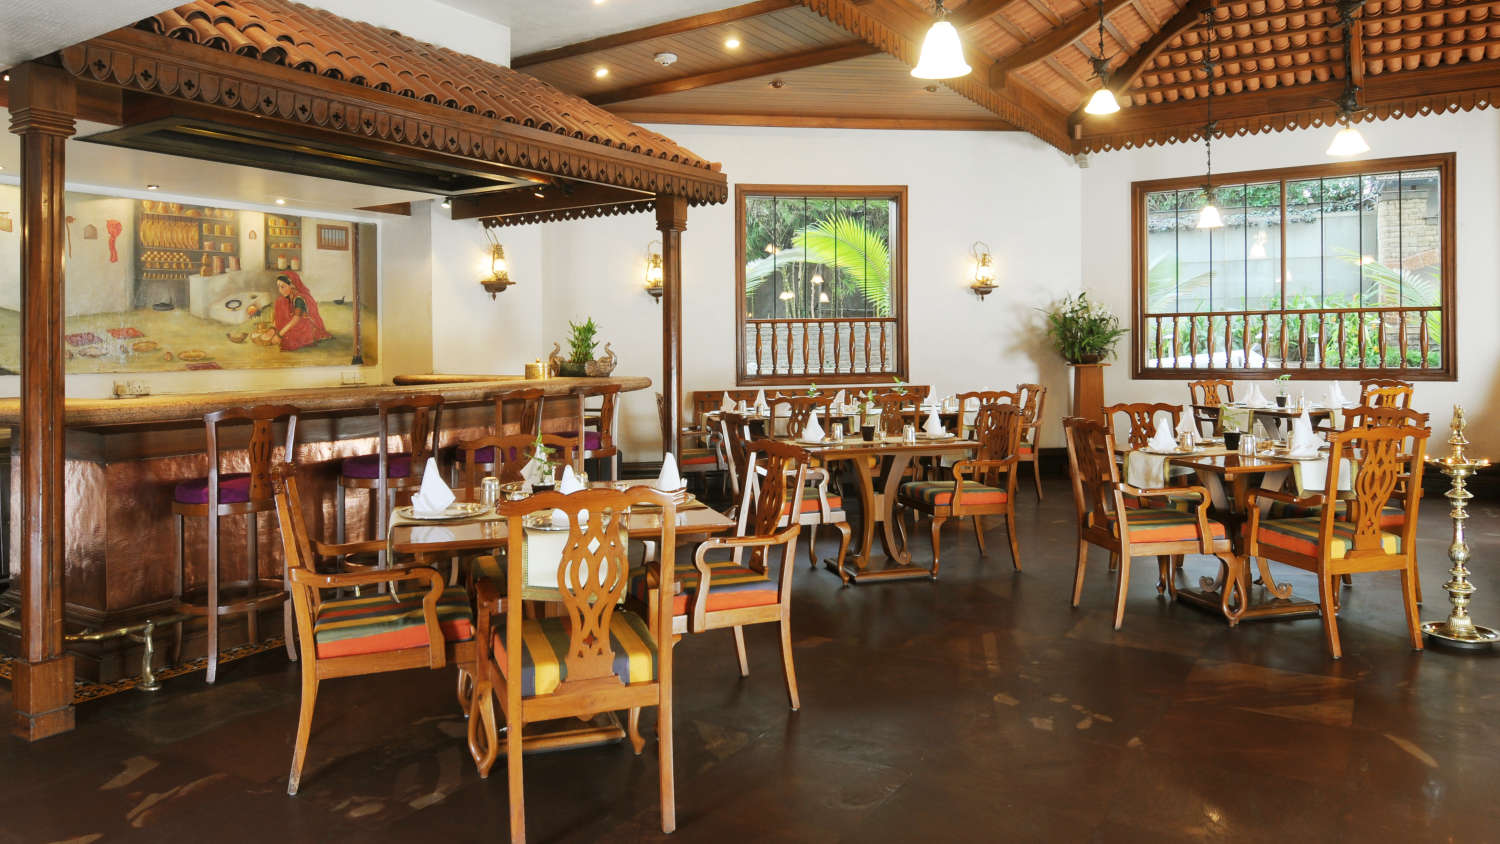 Mumbai S Domestic Airport The Orchid Pune 5 Star Hotel In Our Restaurants A Delight For Food Connoisseurs